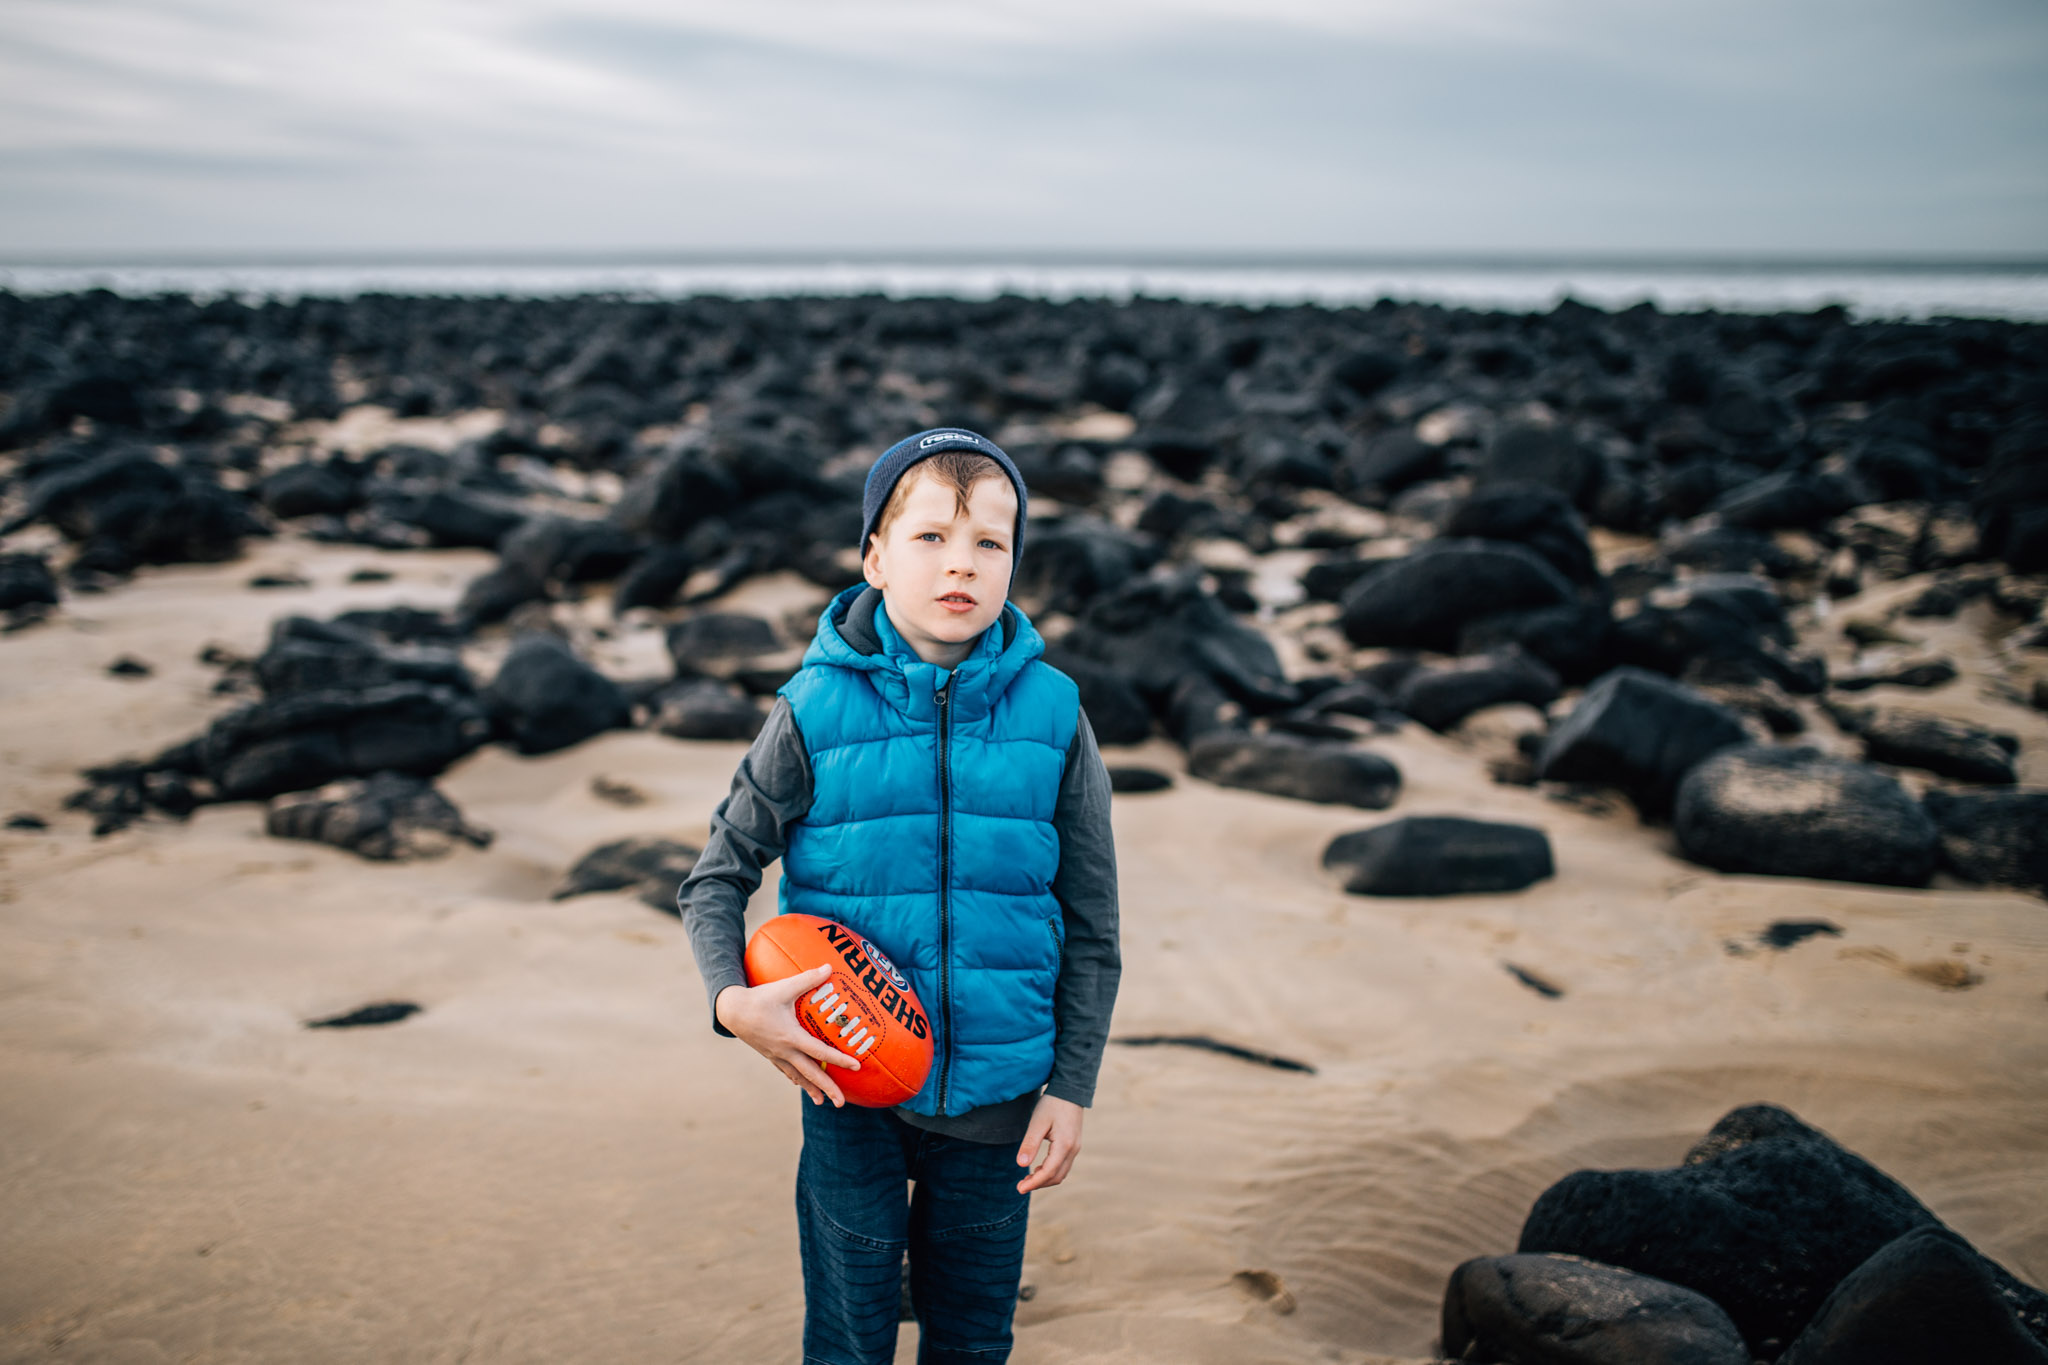 boy with football on beach (1 of 1).jpg